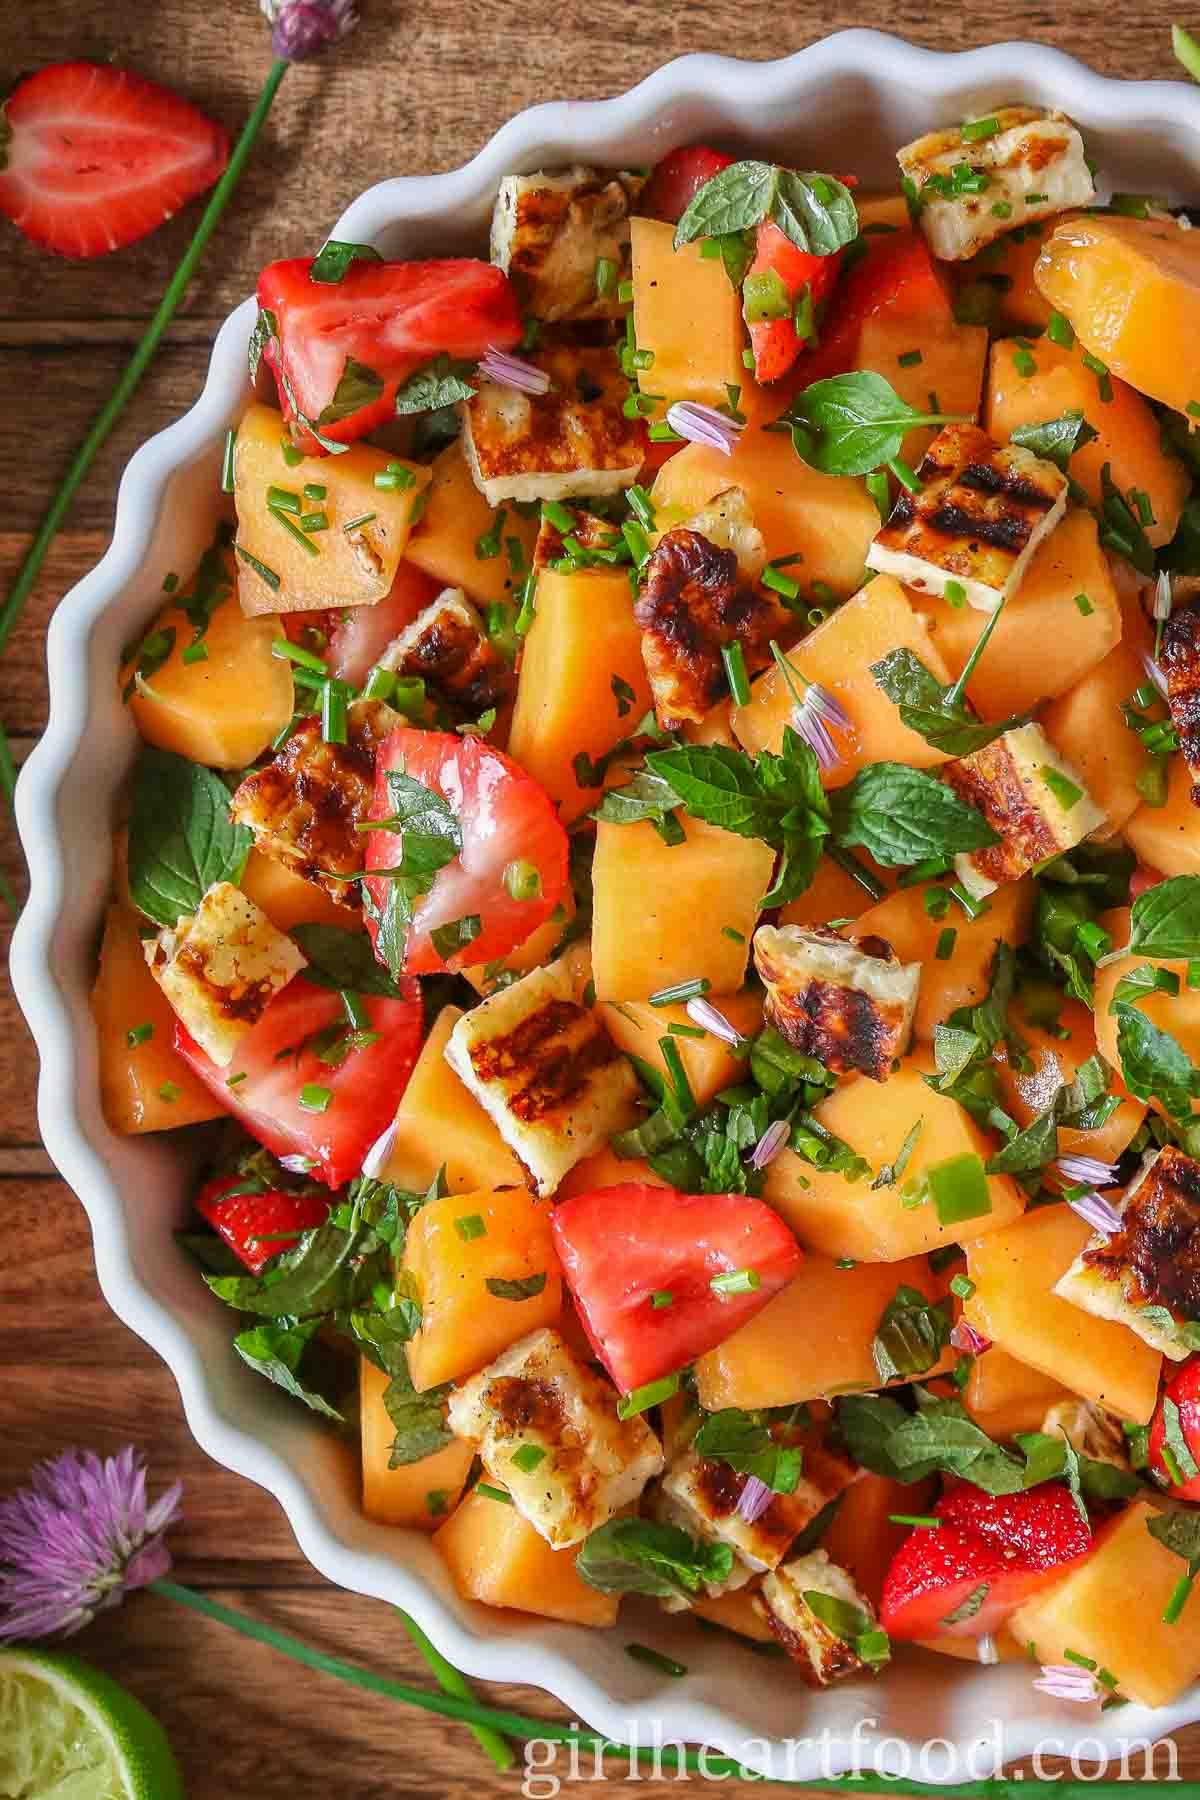 Close up of a dish of cantaloupe fruit salad with grilled halloumi cheese.